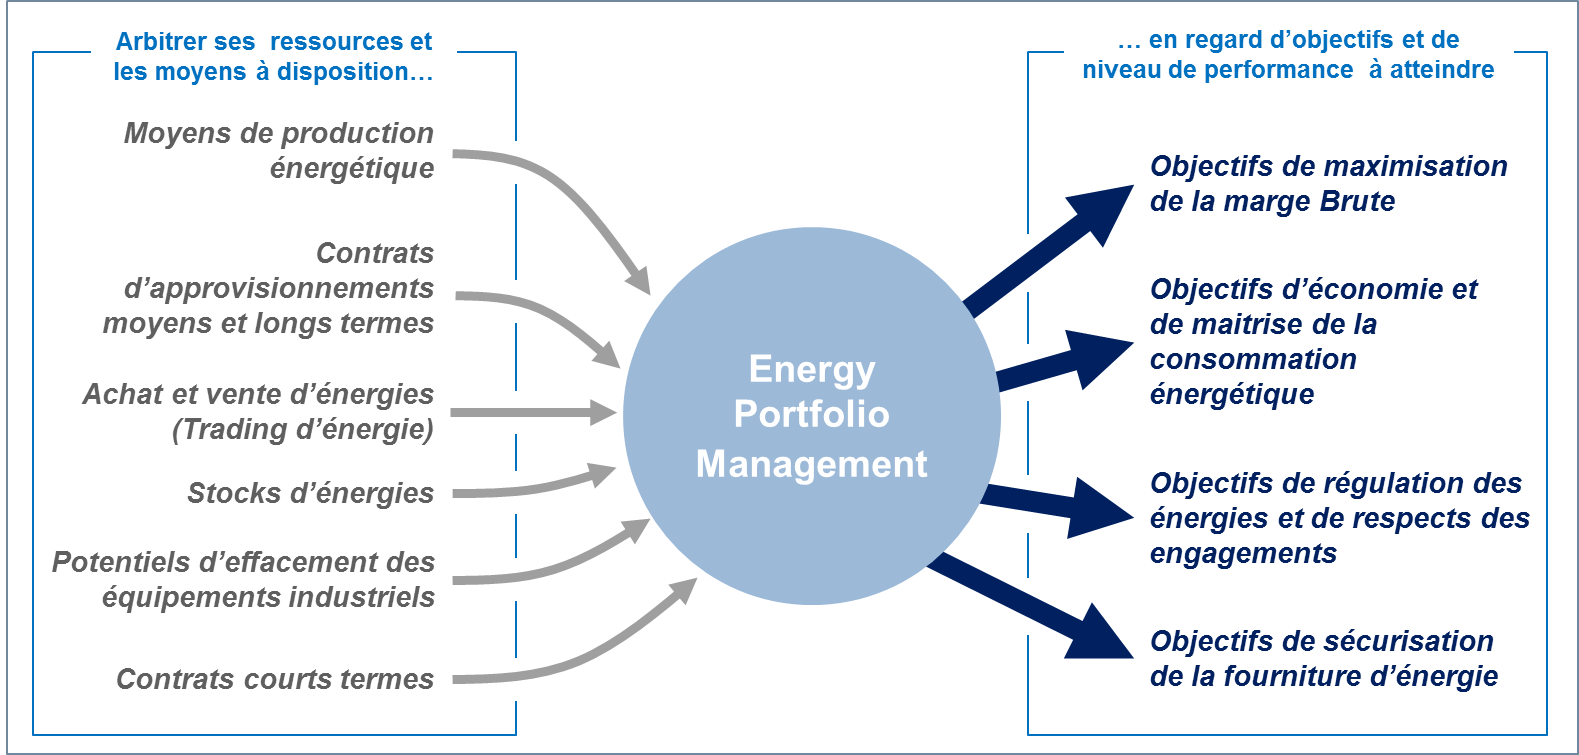 Energy Portfolio Management